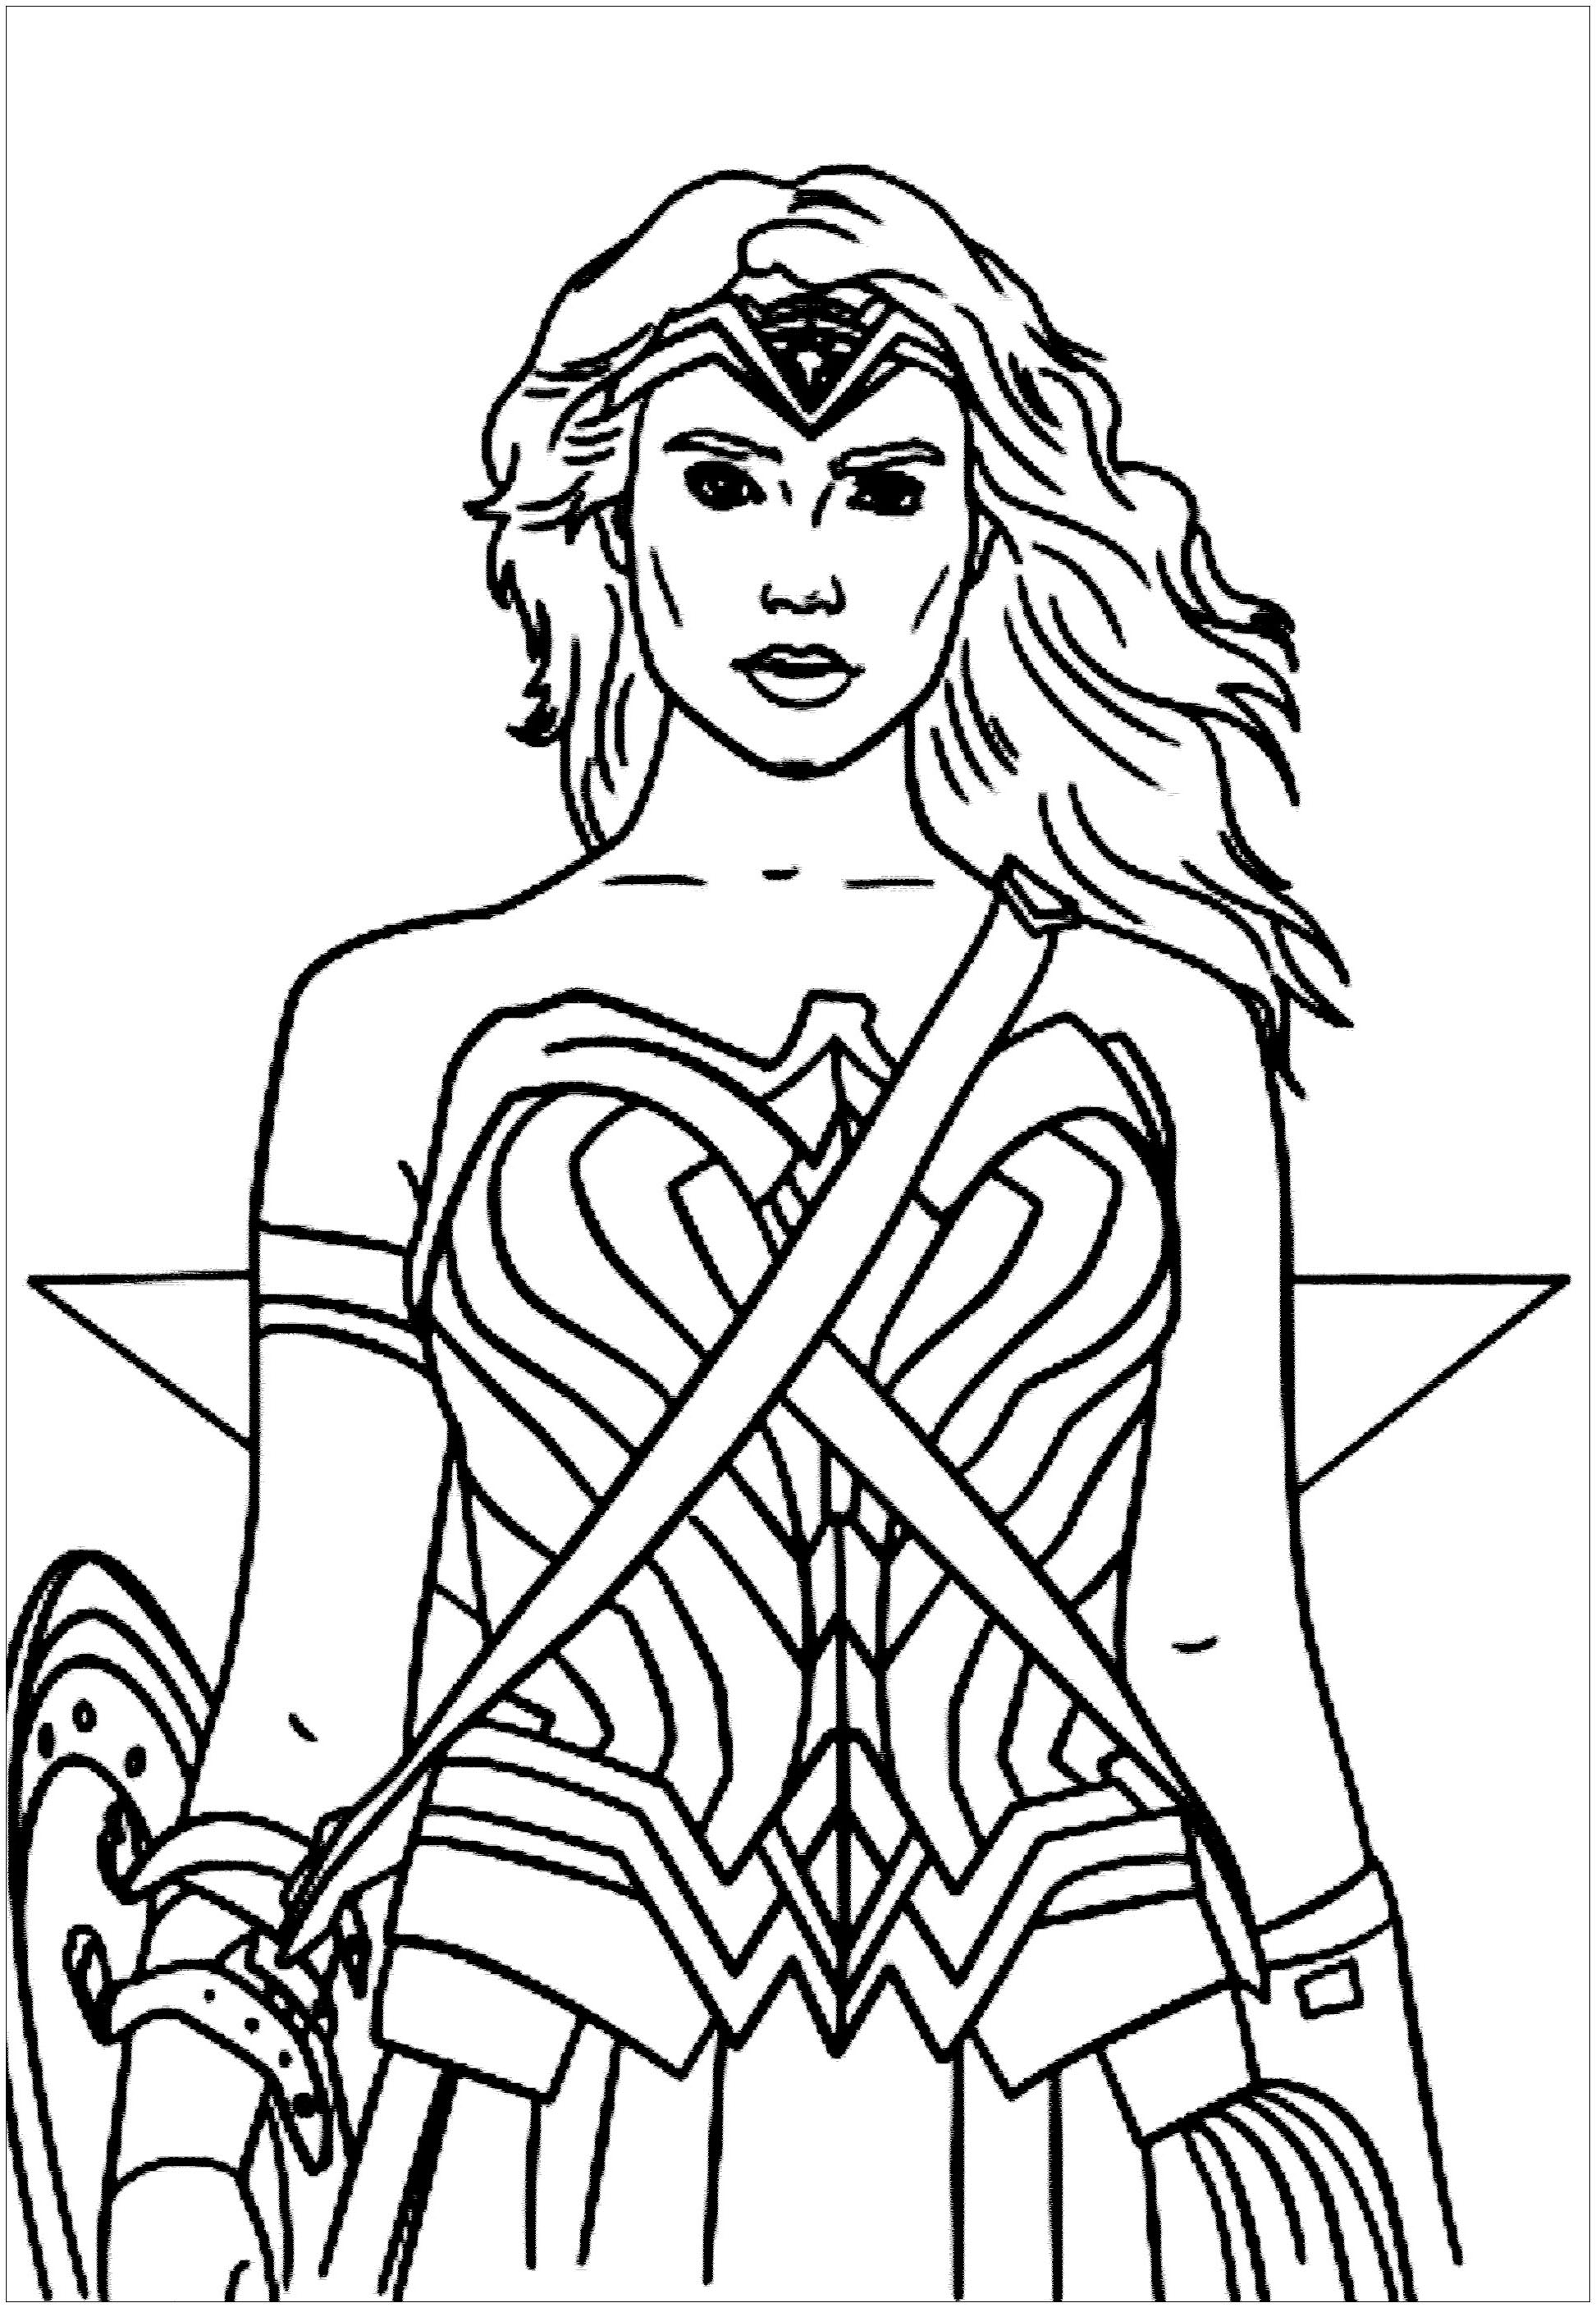 Simple free Wonder Woman coloring page to print and color